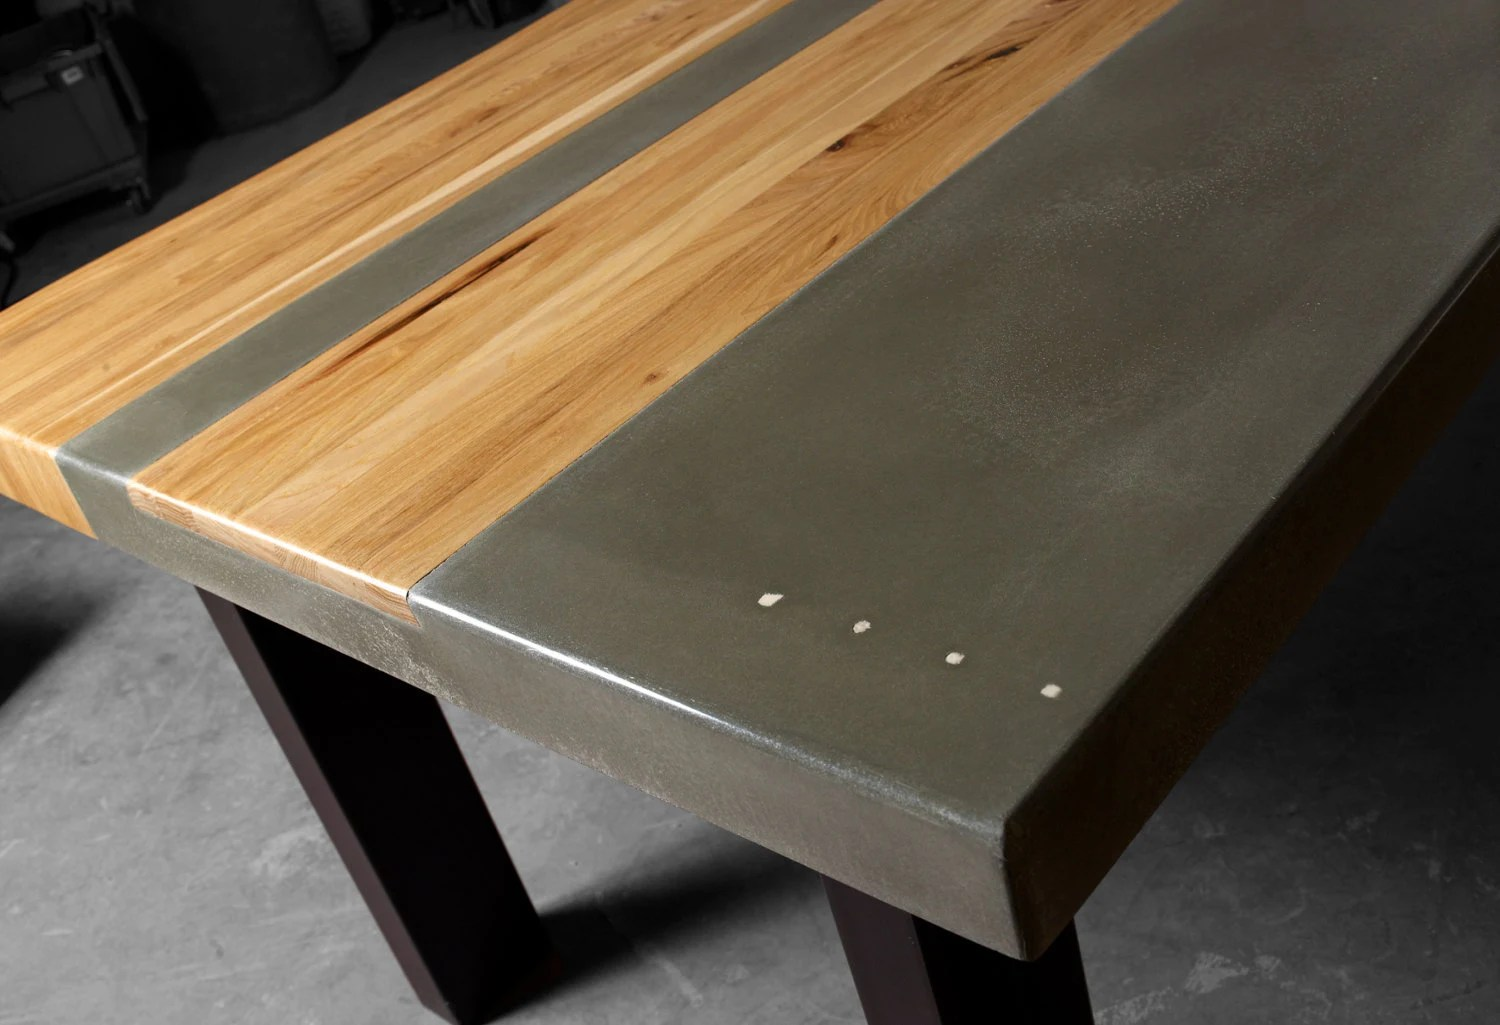 concrete wood steel dining kitchen table concrete kitchen table Concrete Wood Steel Dining Kitchen Table zoom